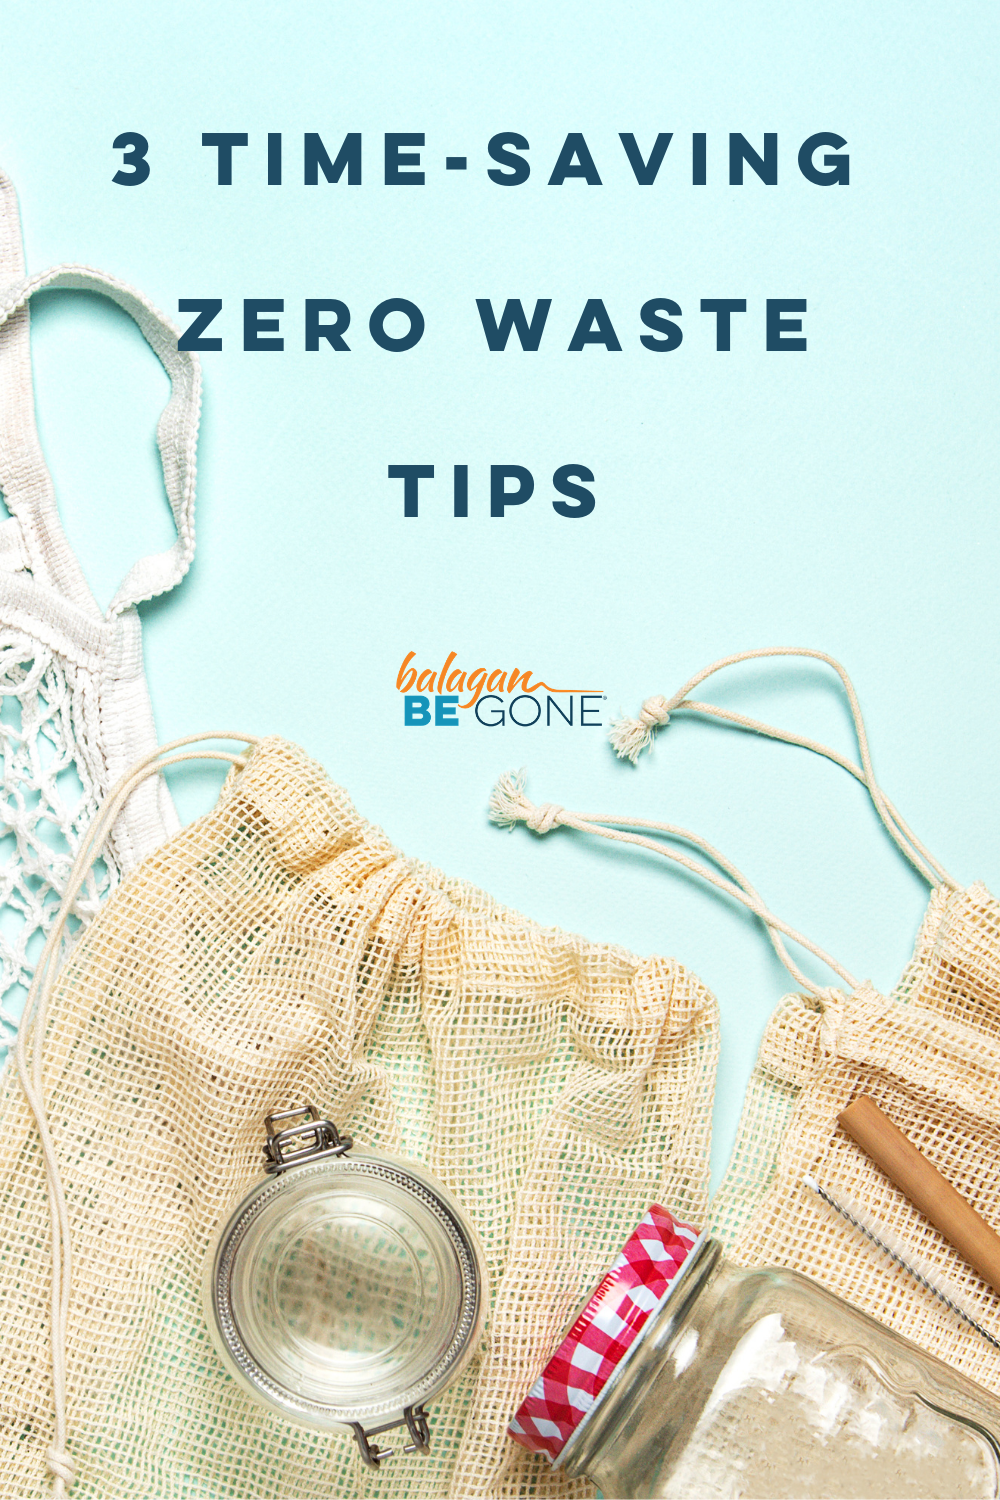 reusable jars and bags to promote zero waste